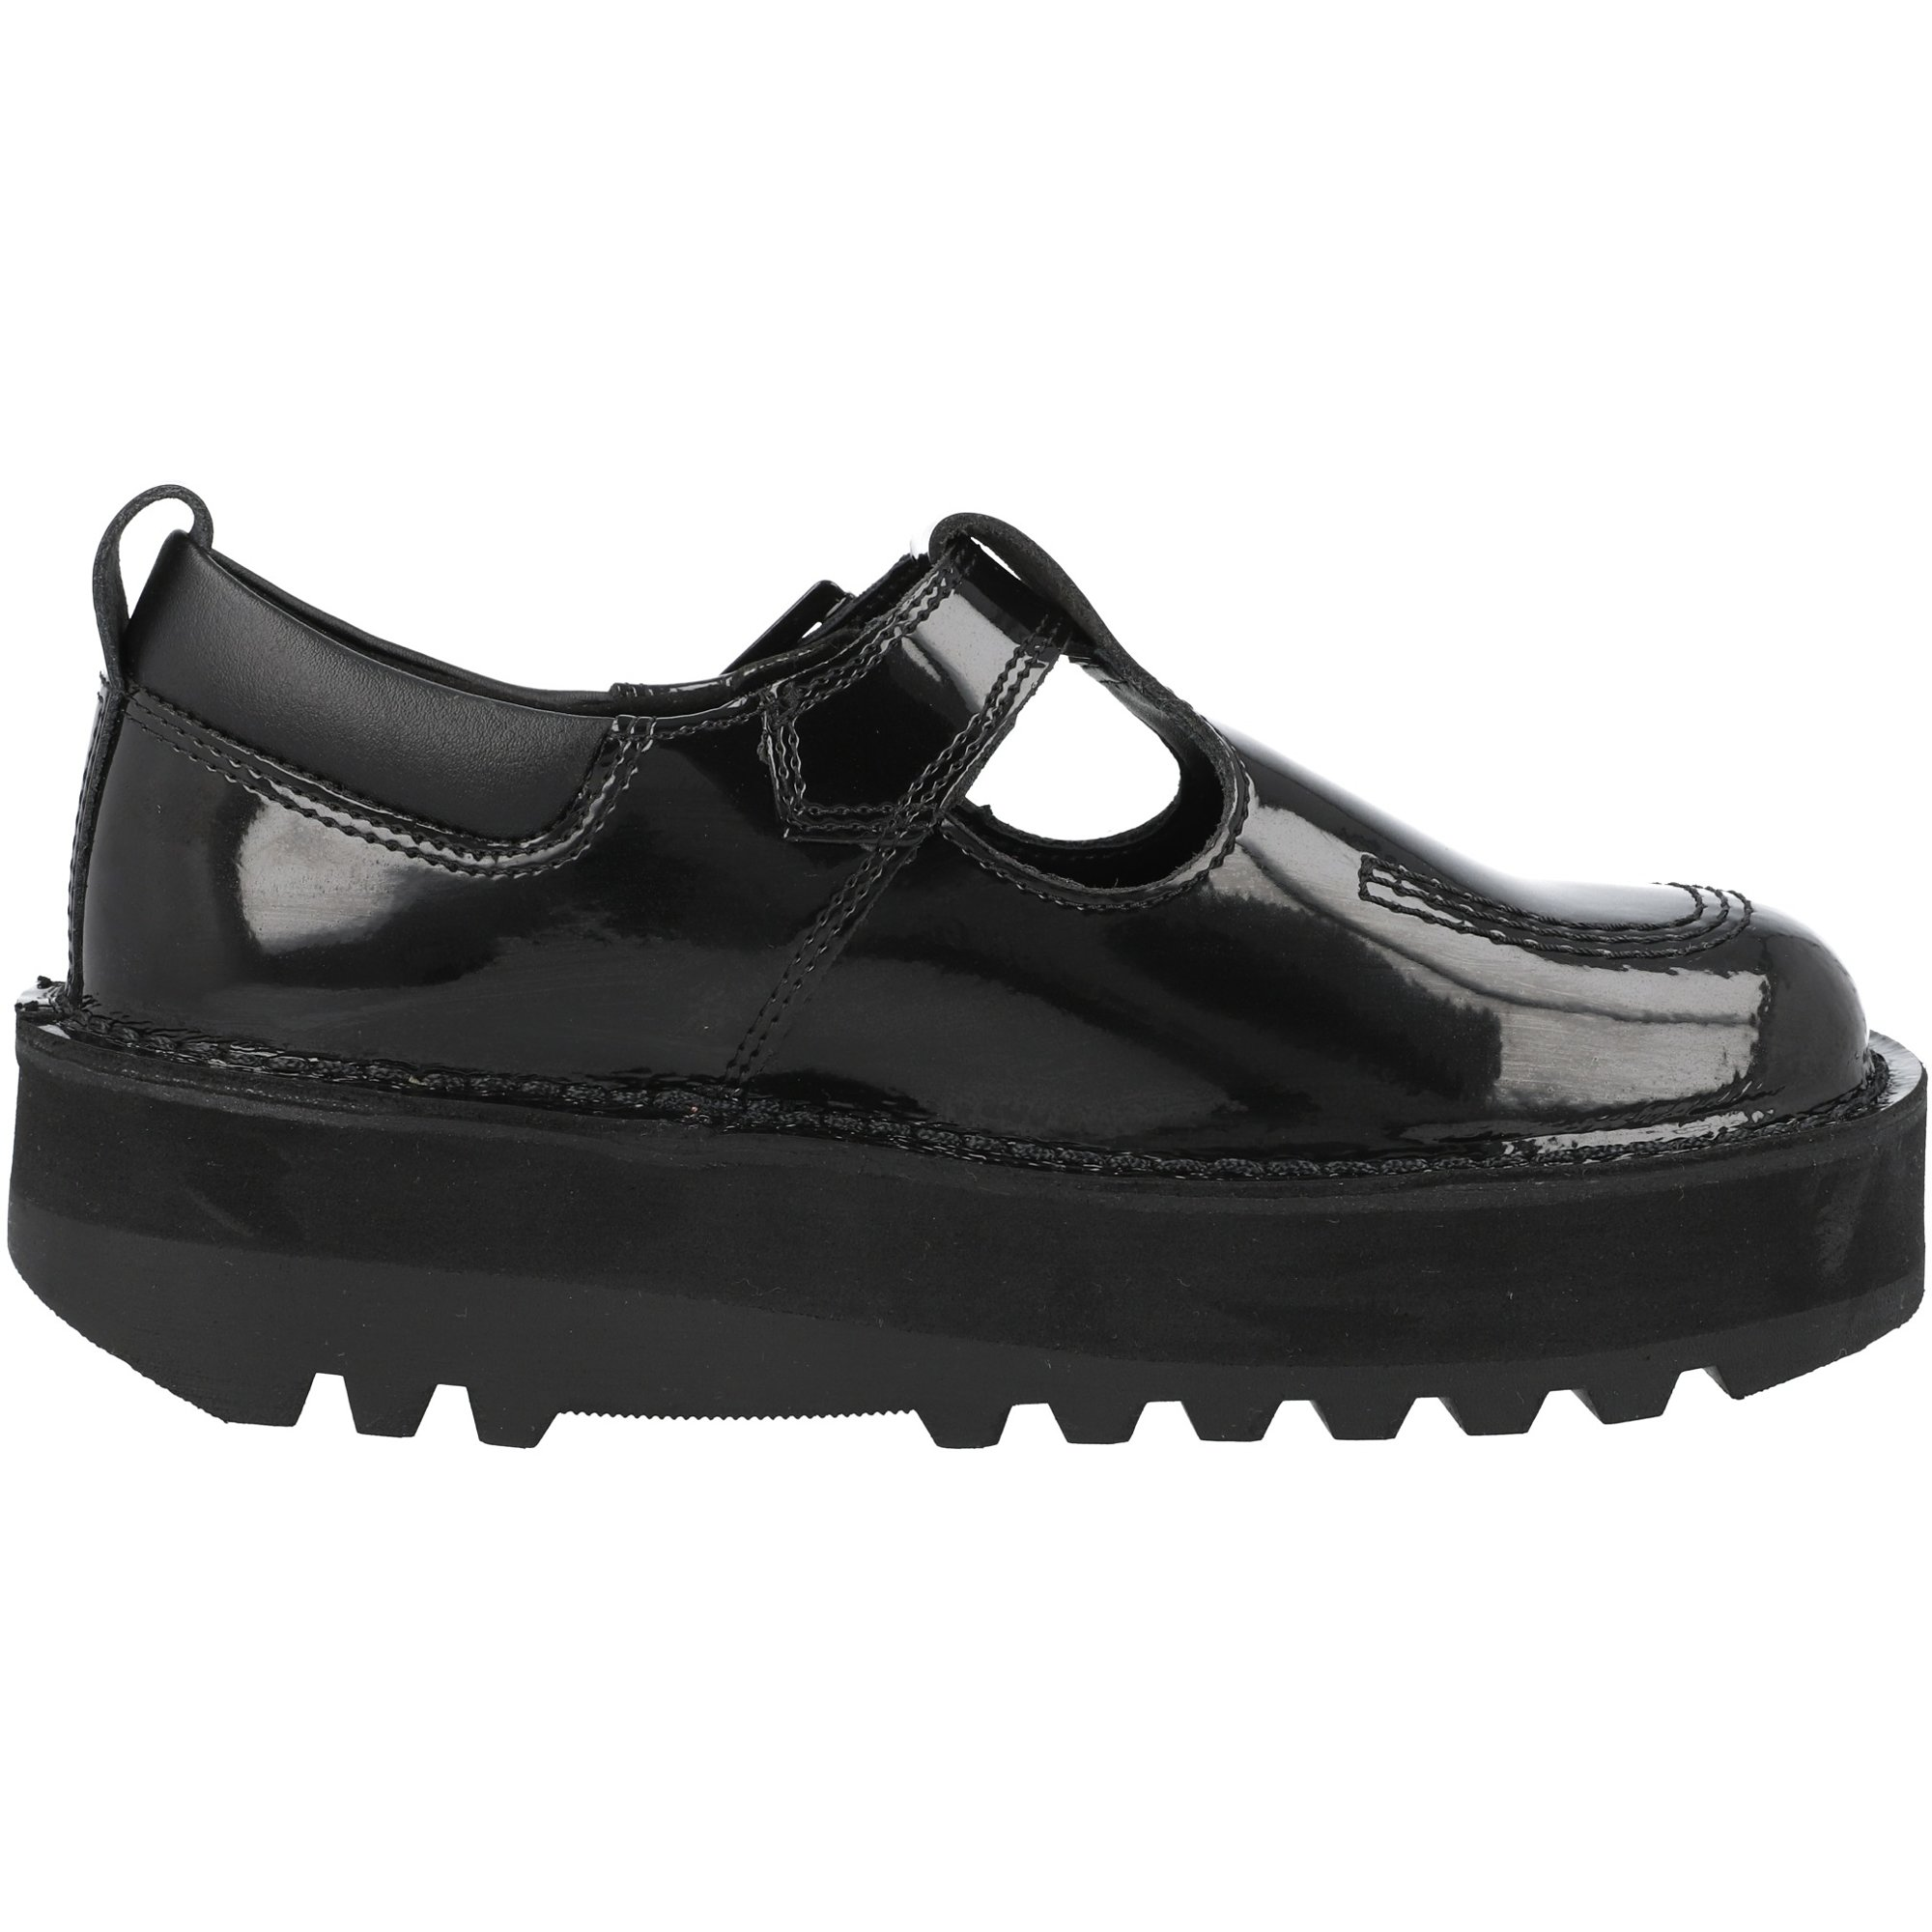 Kickers Kick Stack T Bar Black Patent